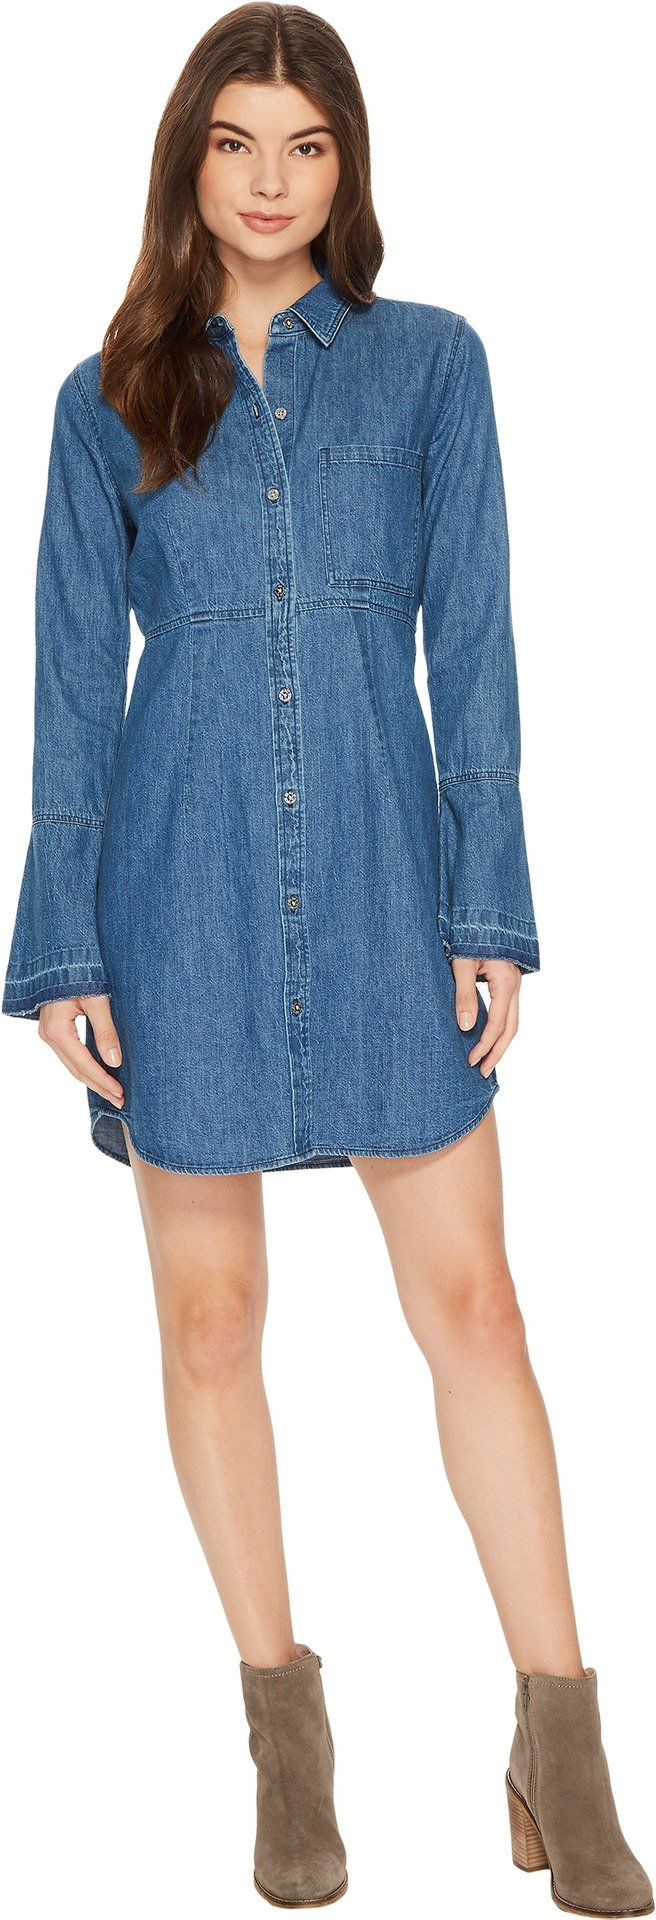 7 For All Mankind Women's Bell Sleeve Denim Shirtdress in Pico Blue Pico Blue Medium